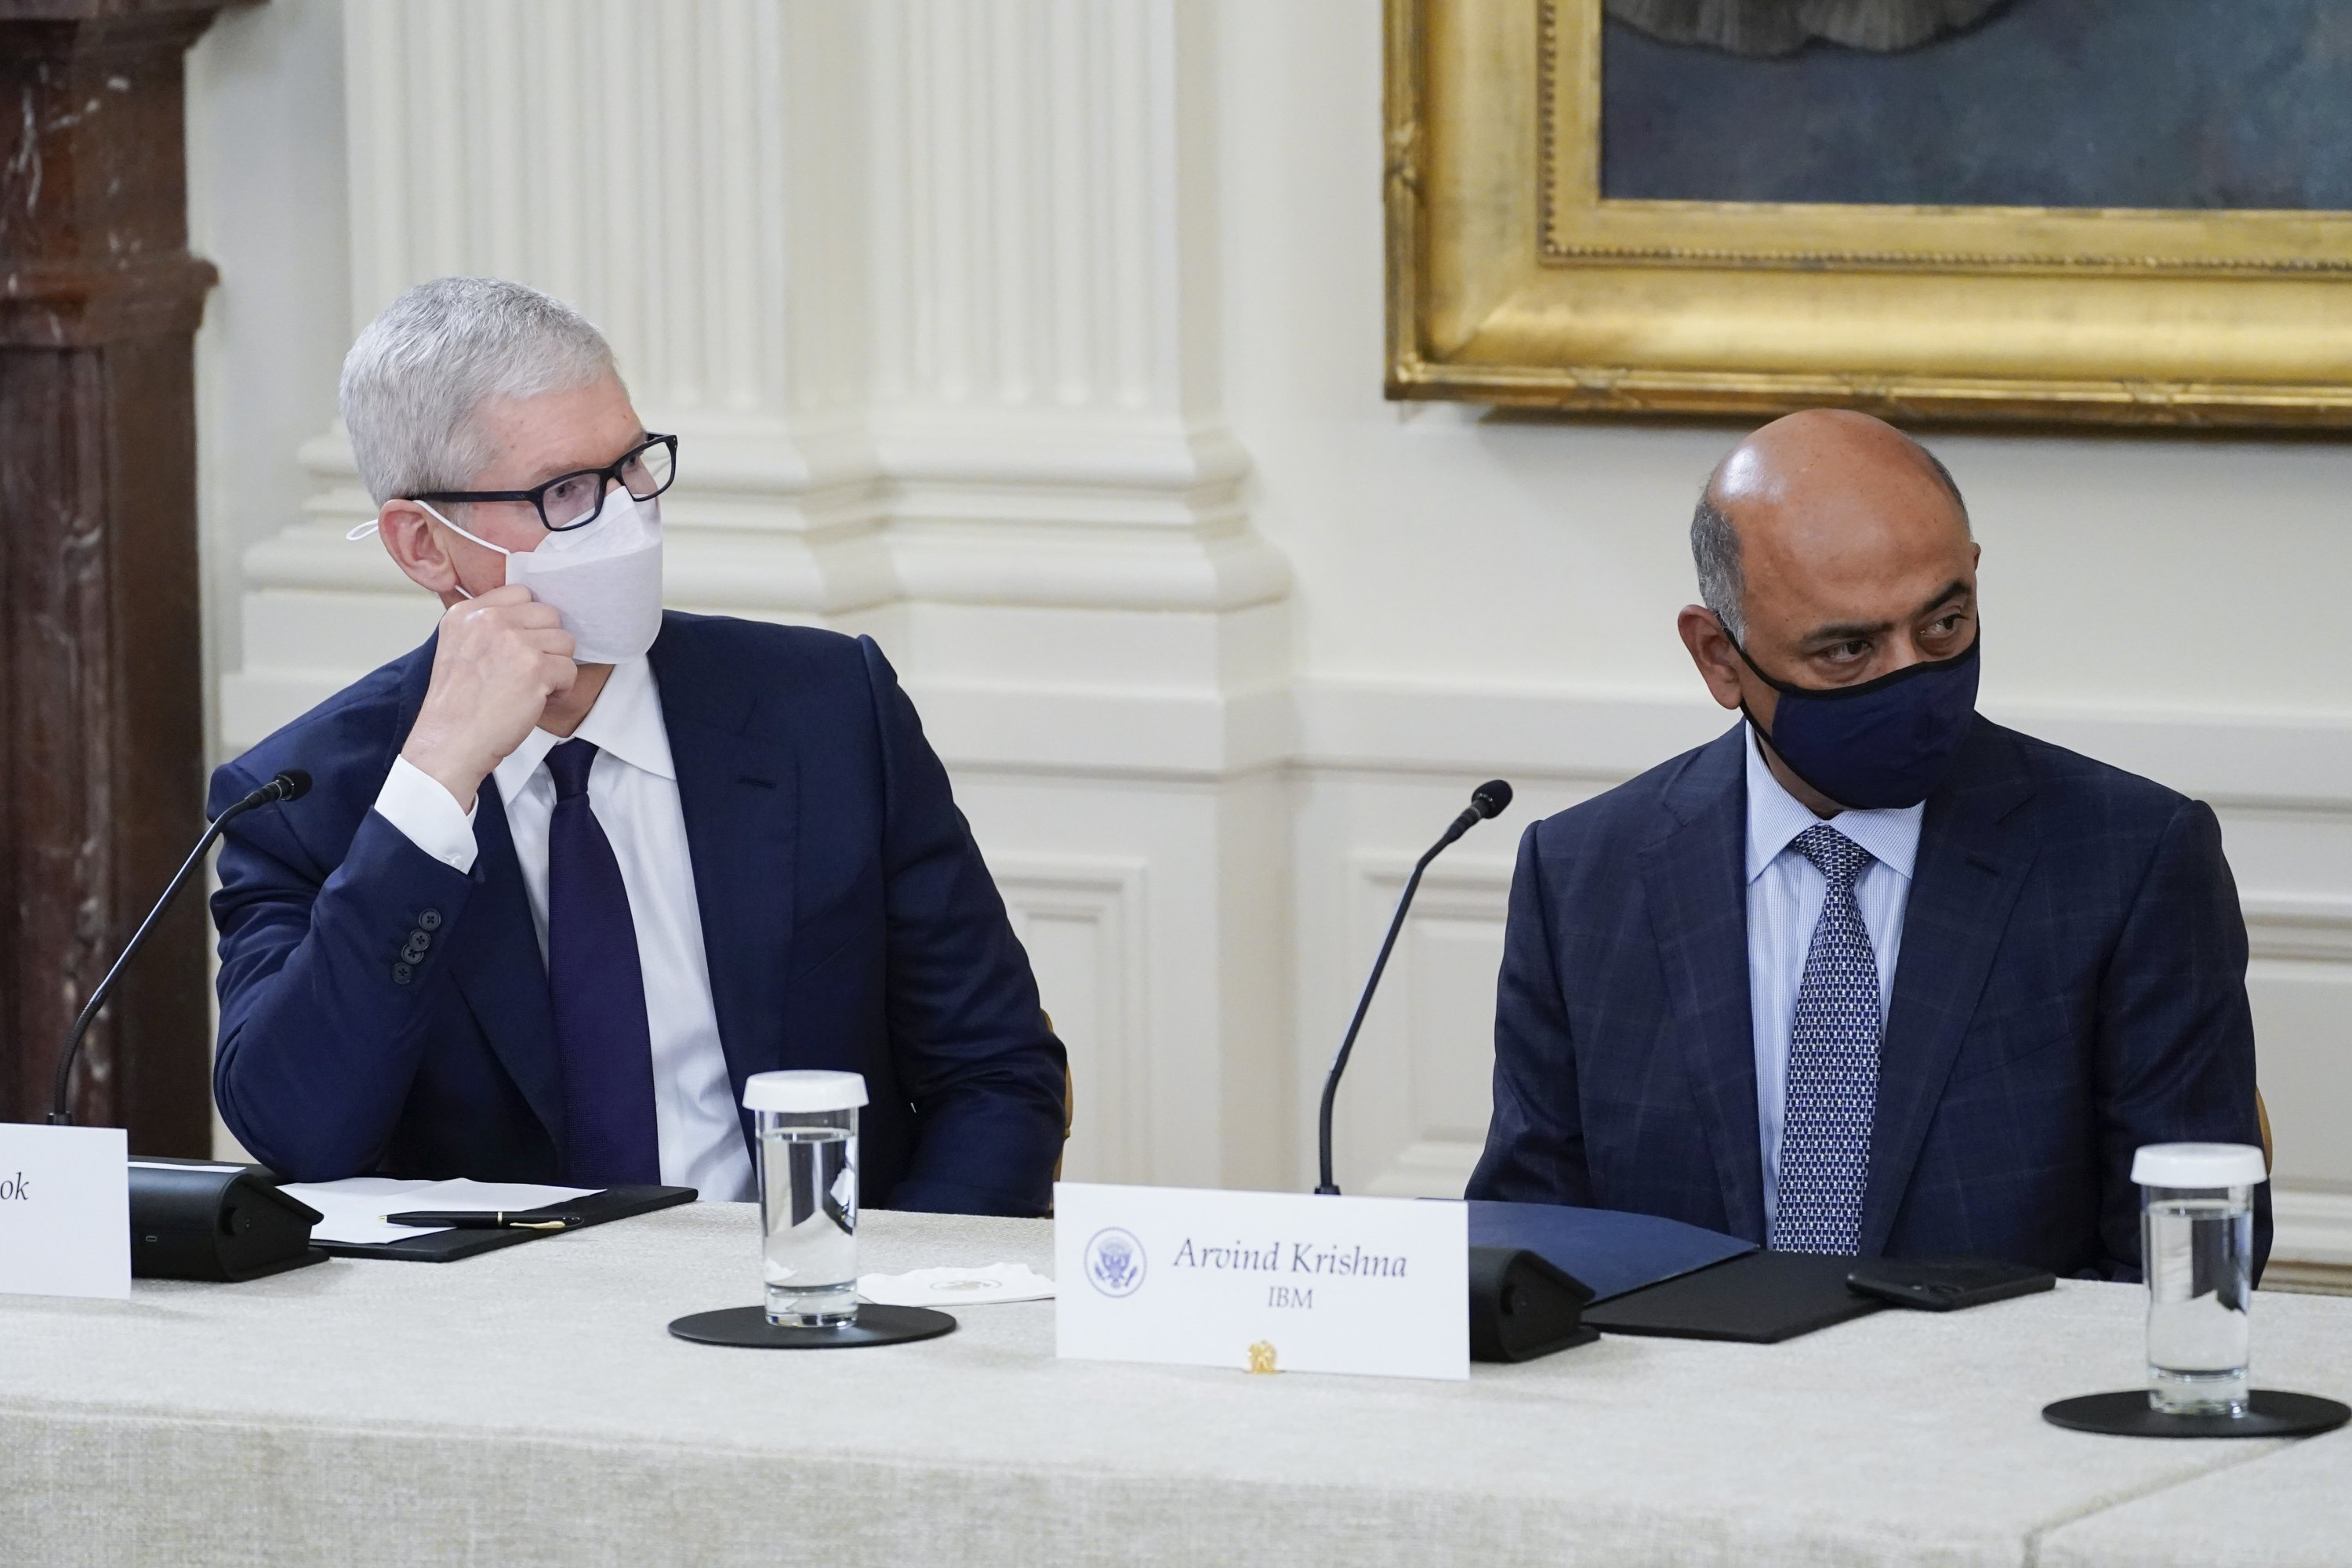 Apple CEO Tim Cook (L) and IBM CEO Arvind Krishna listen as U.S. President Joe Biden speaks during a meeting about cybersecurity in the East Room of the White House, in Washington, U.S., Aug. 25, 2021. (AP Photo)